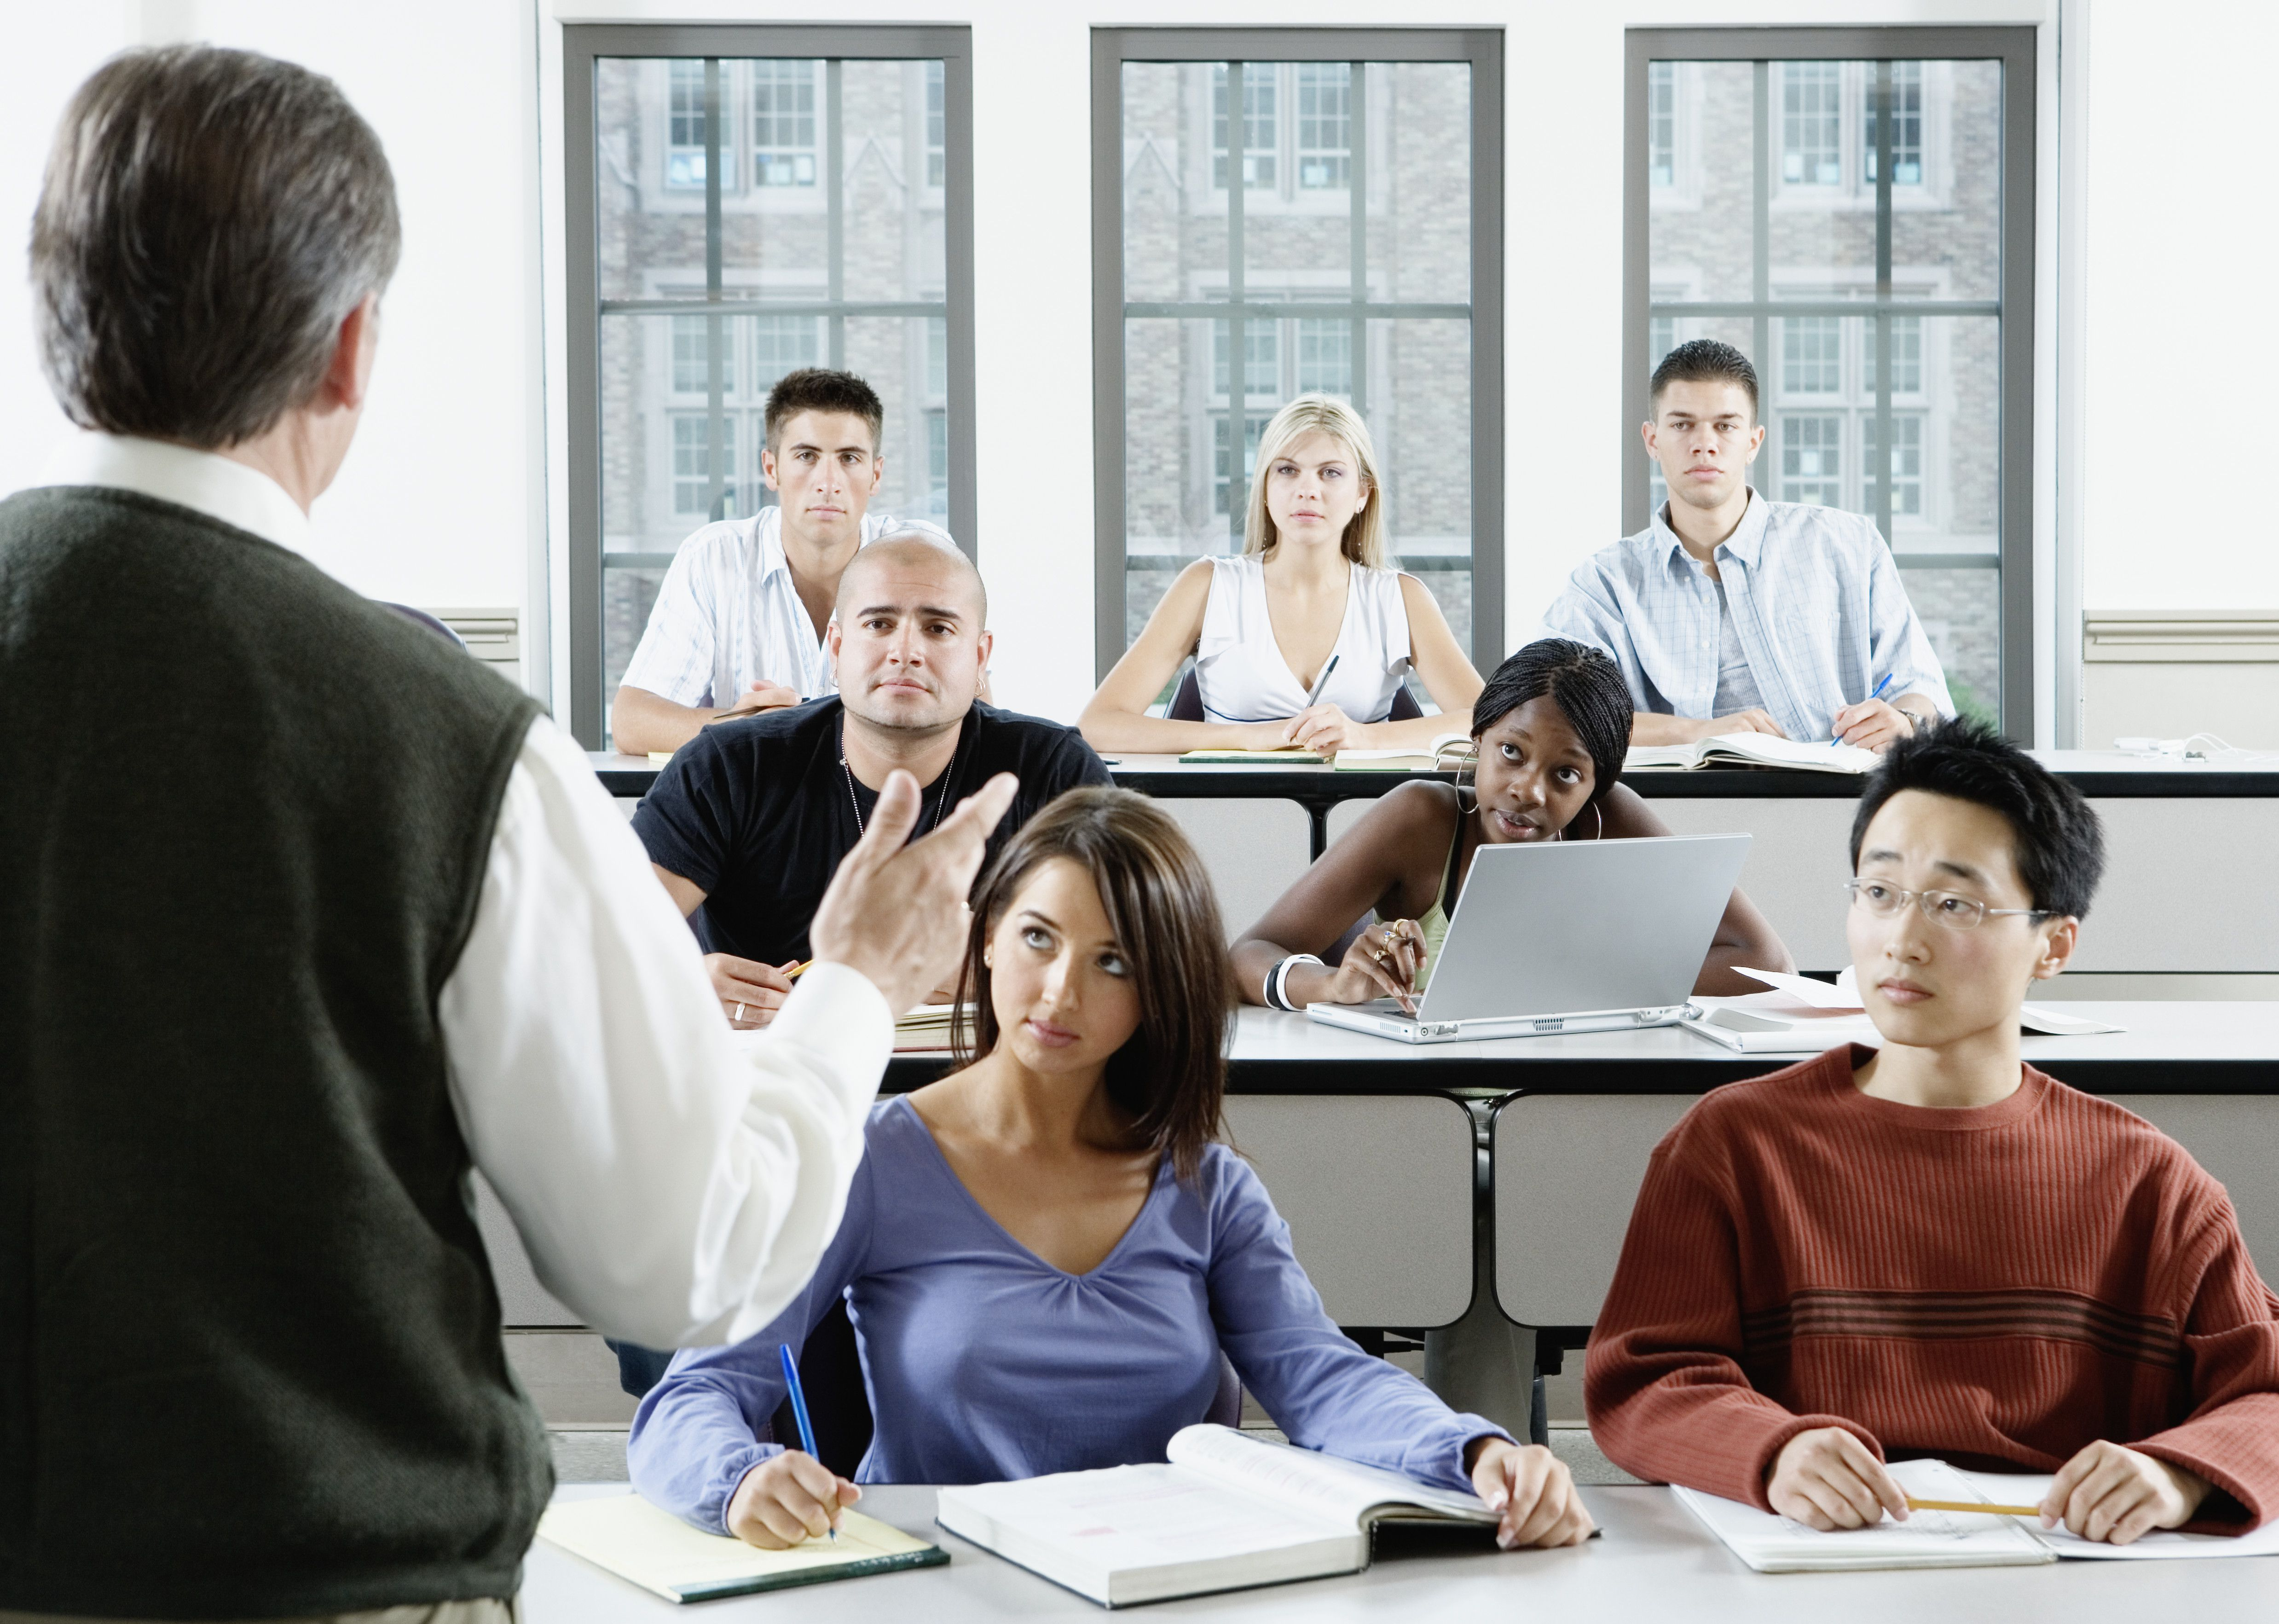 Education students in a college classroom.